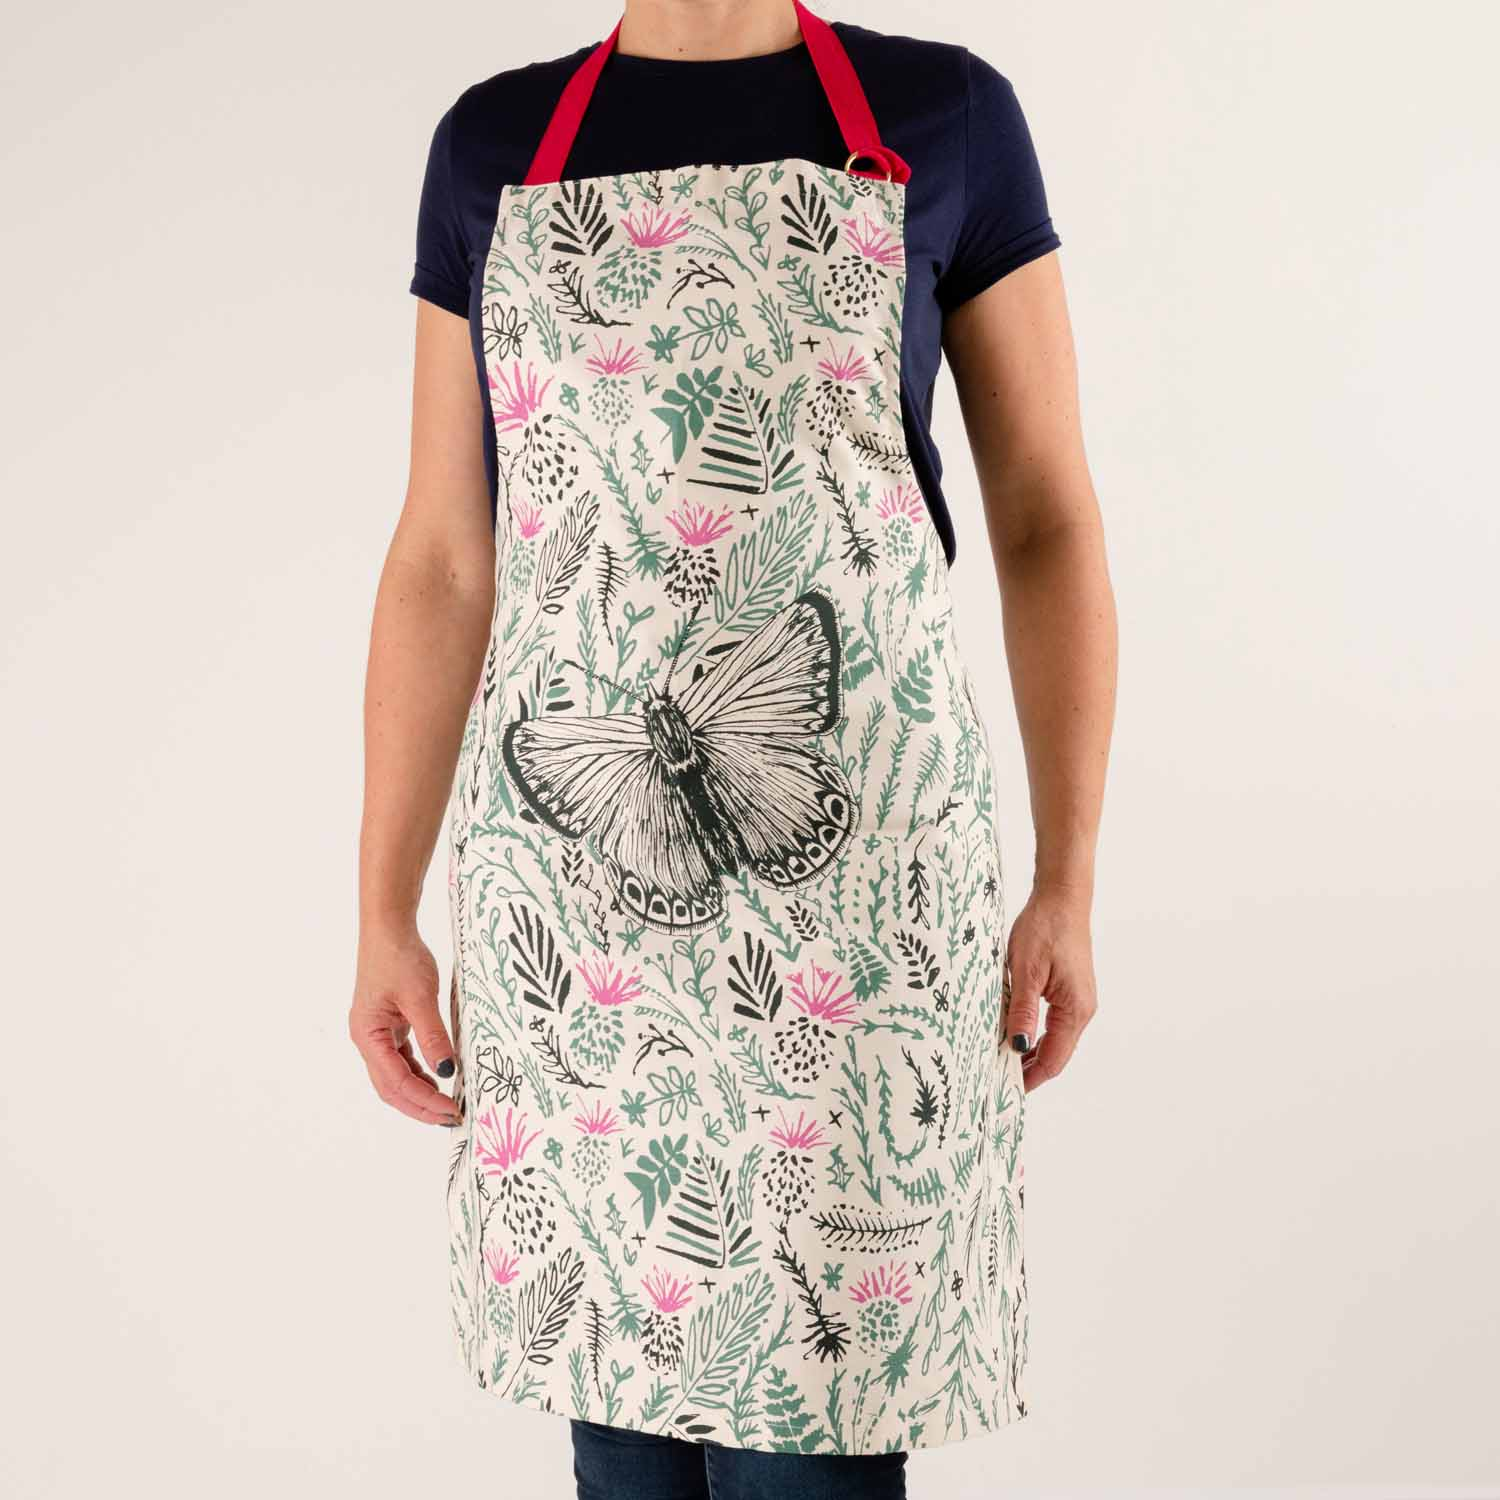 Thistles and Butterflies Apron by Cherith Harrison